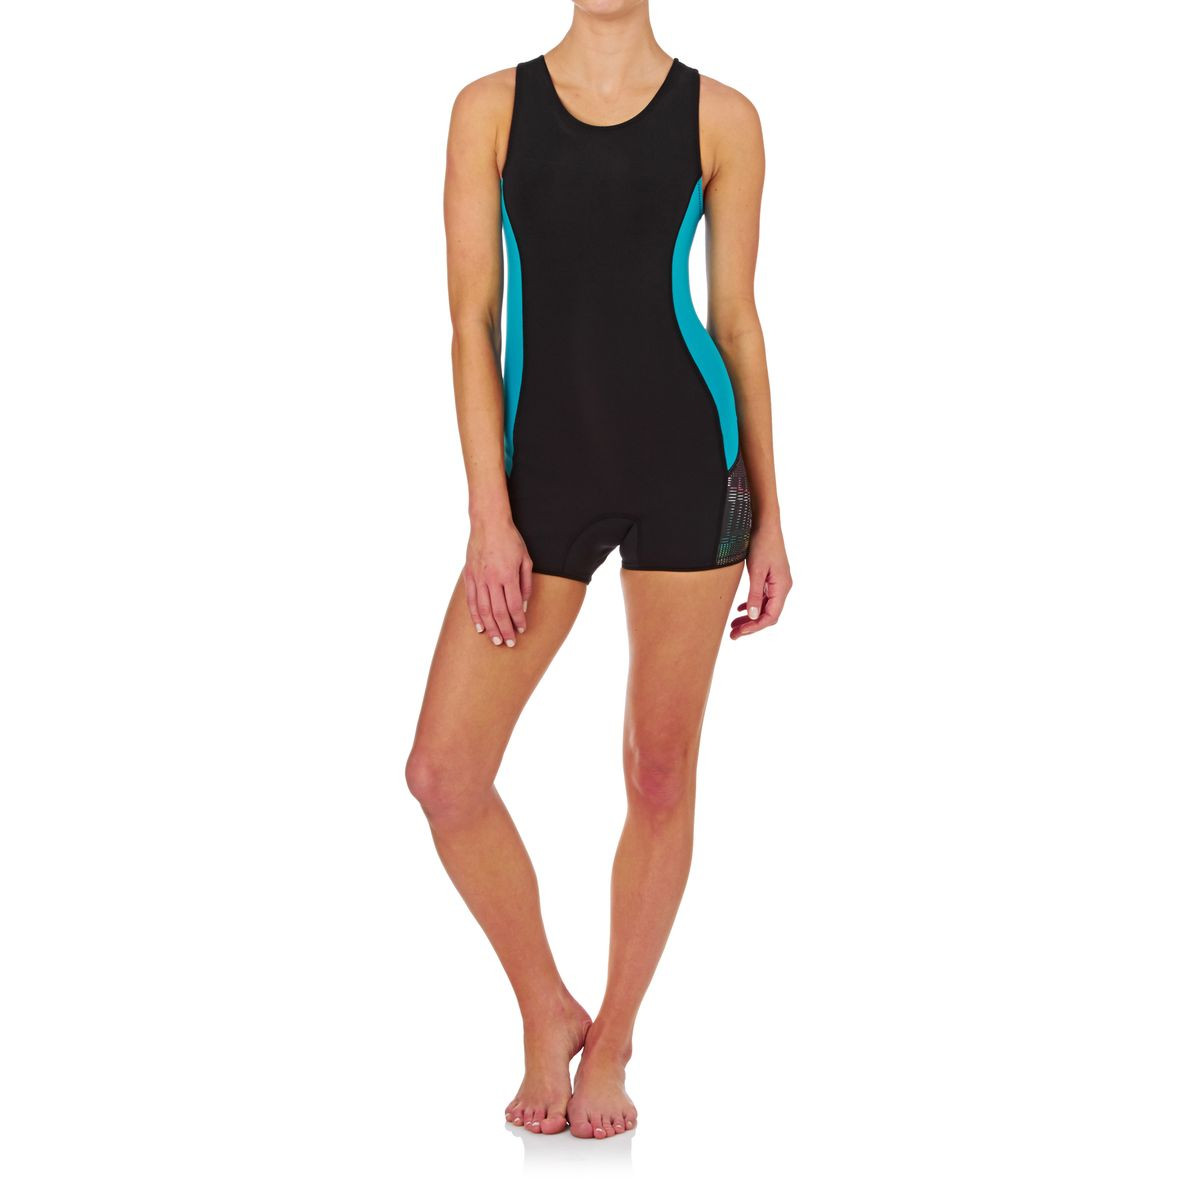 0f4358b8fb Patagonia Womens R1 1.5mm Zipperless Jane Wetsuit - Howling Turquoise